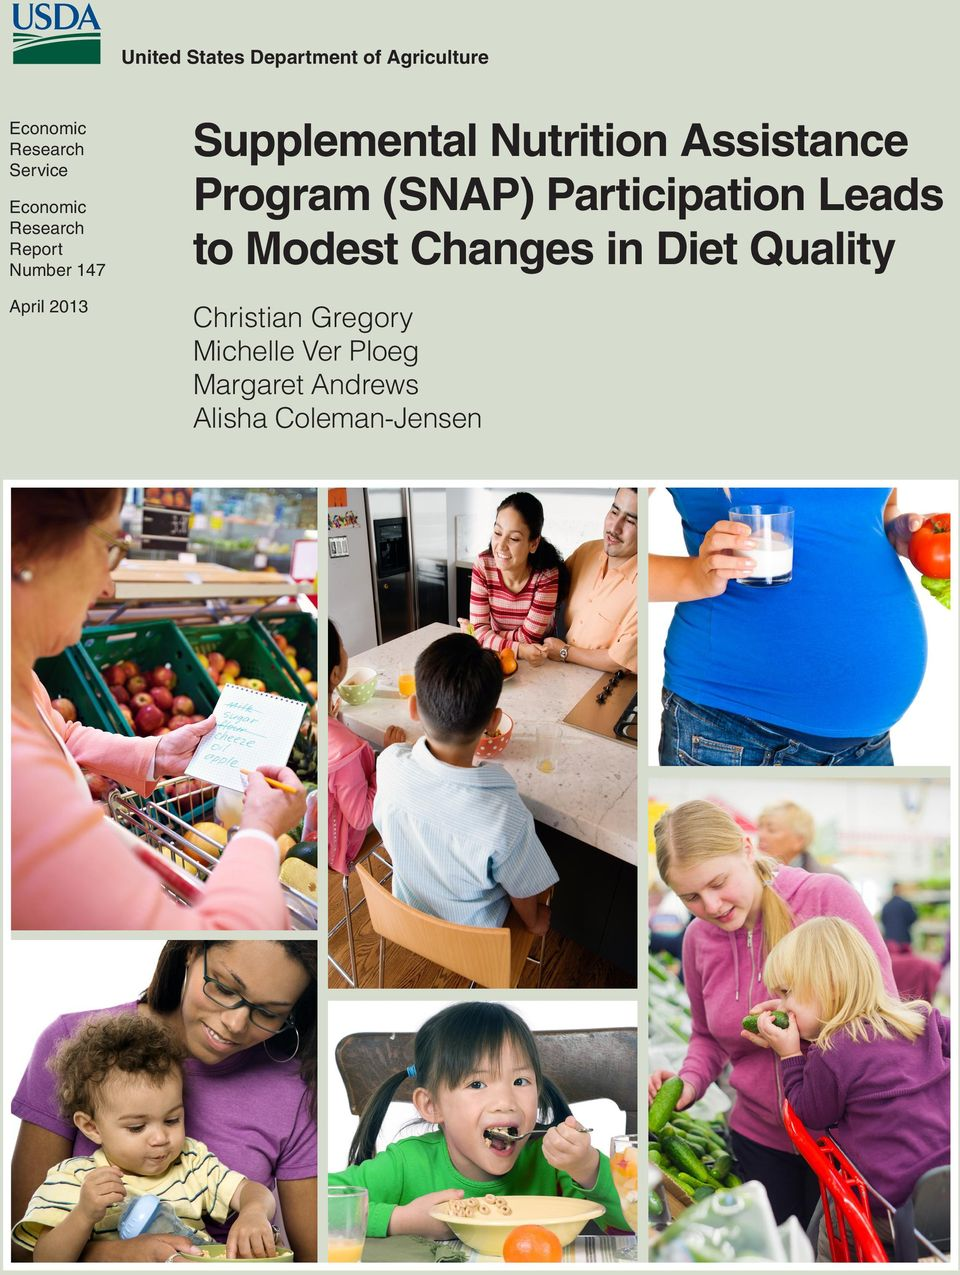 Assistance Program (SNAP) Participation Leads to Modest Changes in Diet